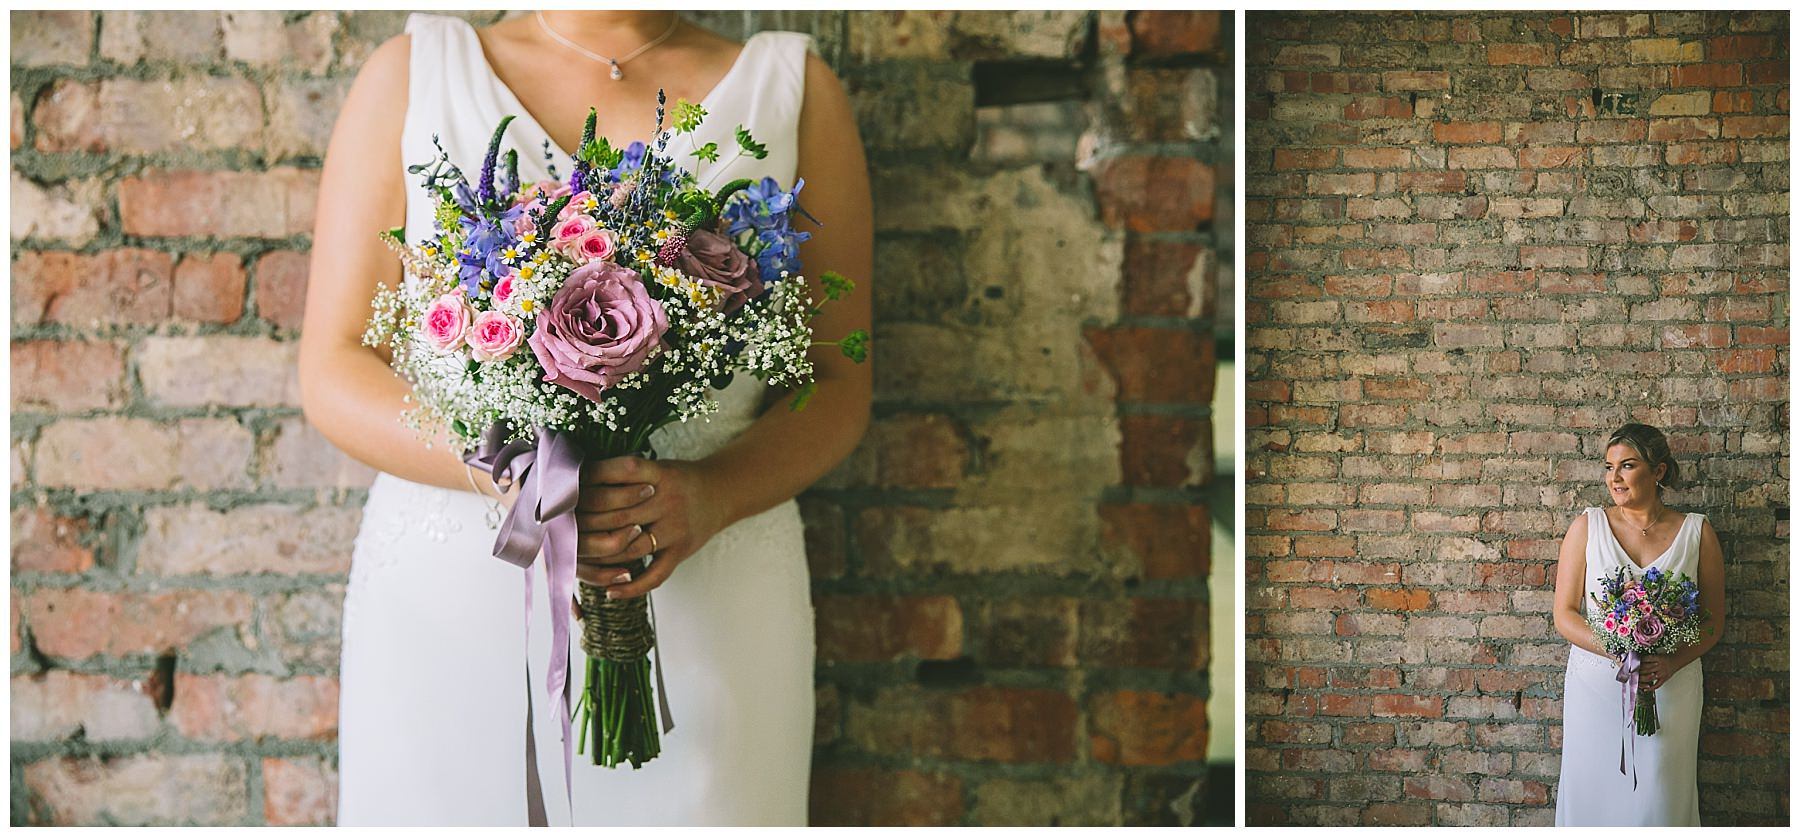 Bridal Portraits at Victoria Baths